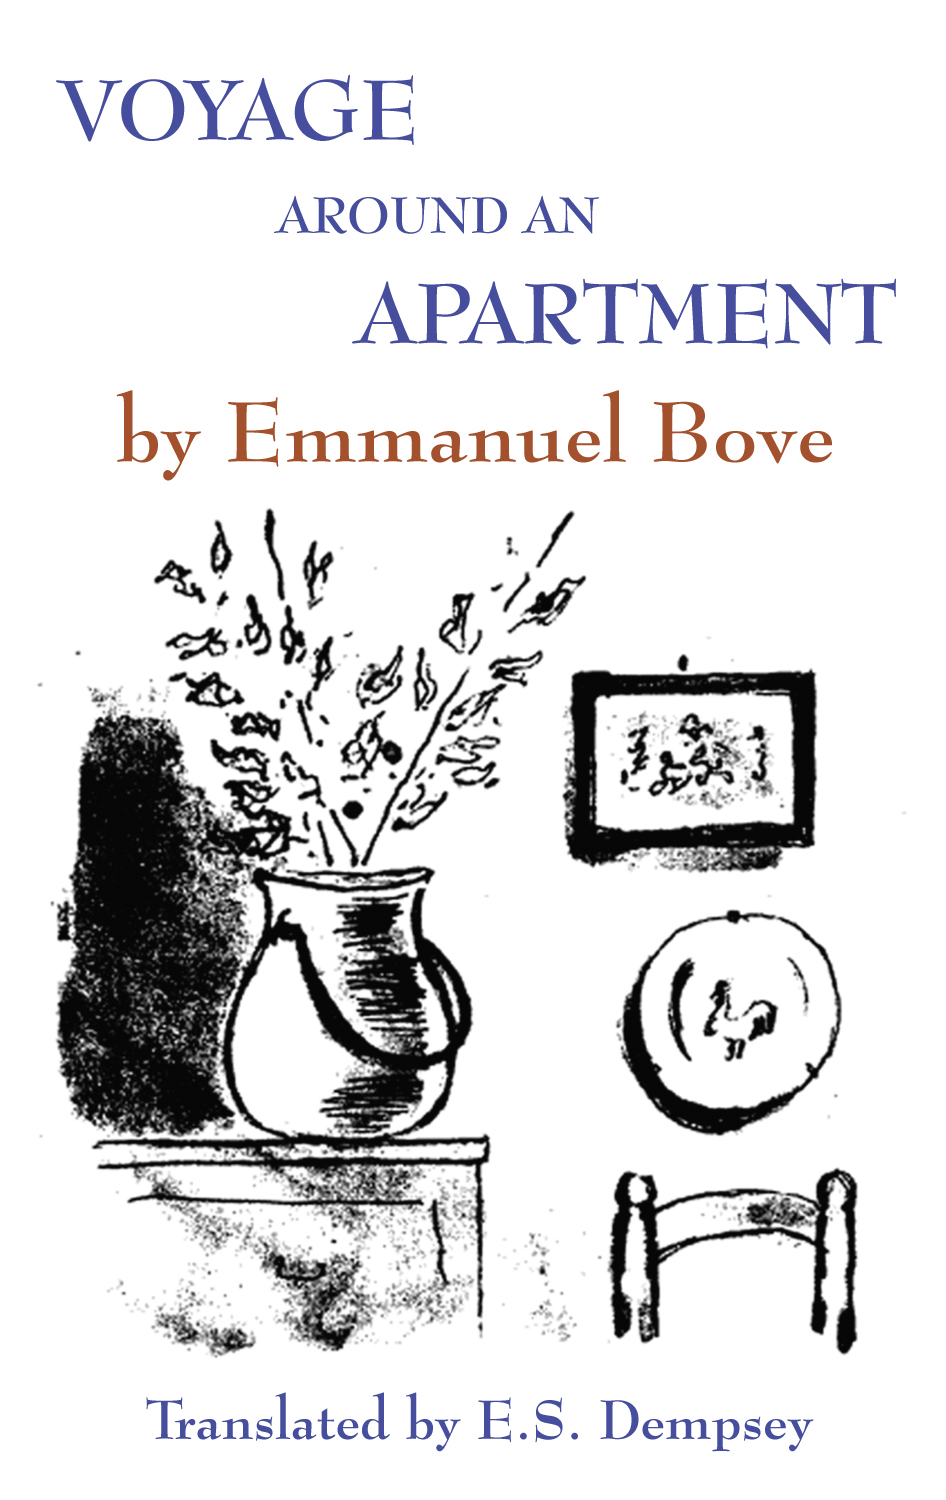 Voyage Around an Apartment by Emmanuel Bove